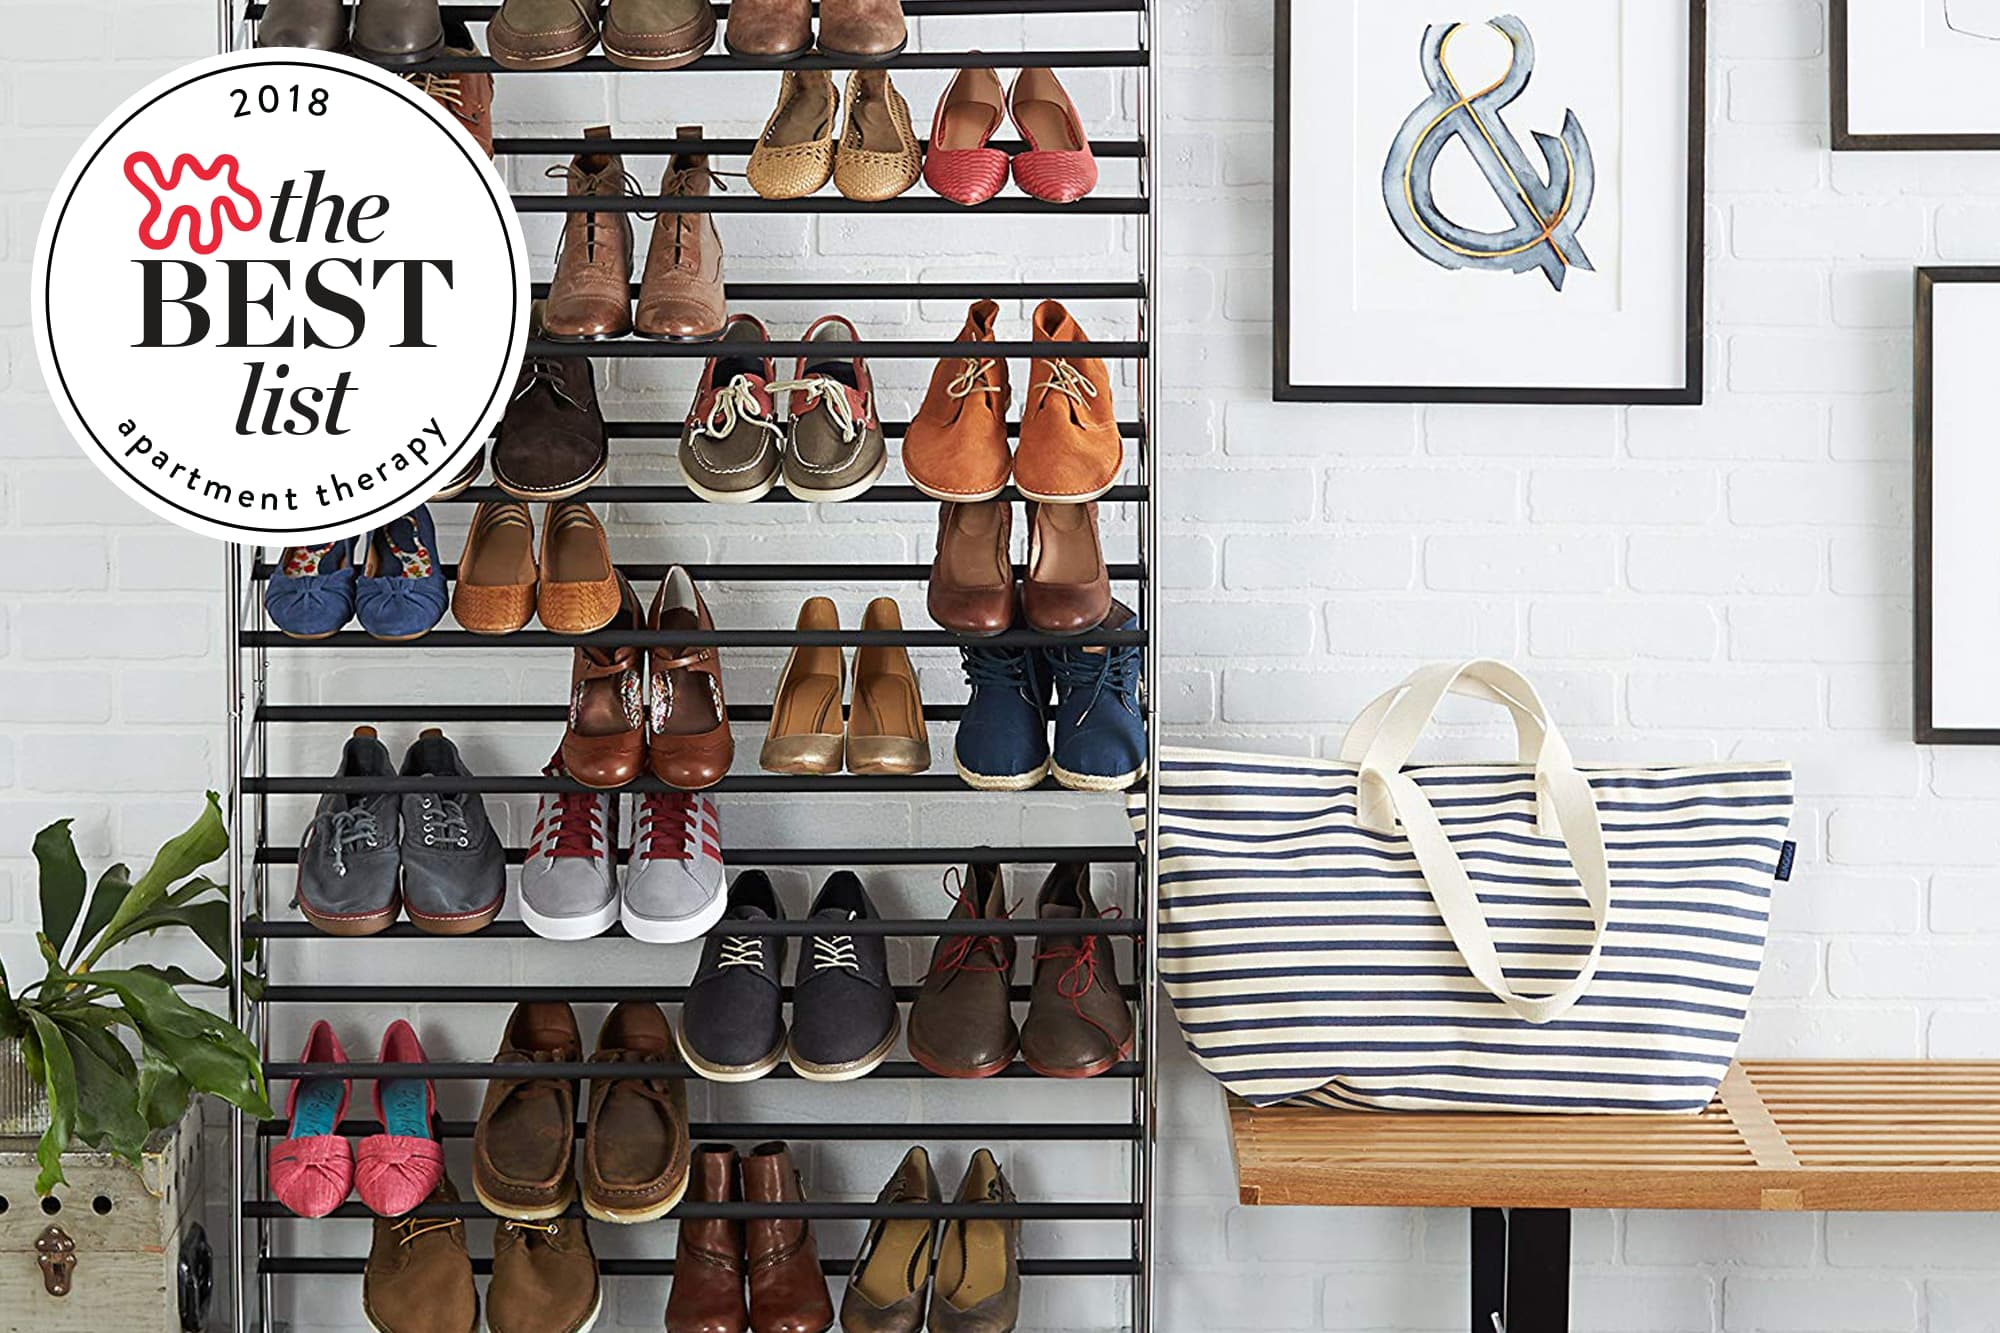 The 10 Best Solutions for Shoe Storage  64b170f9f18b